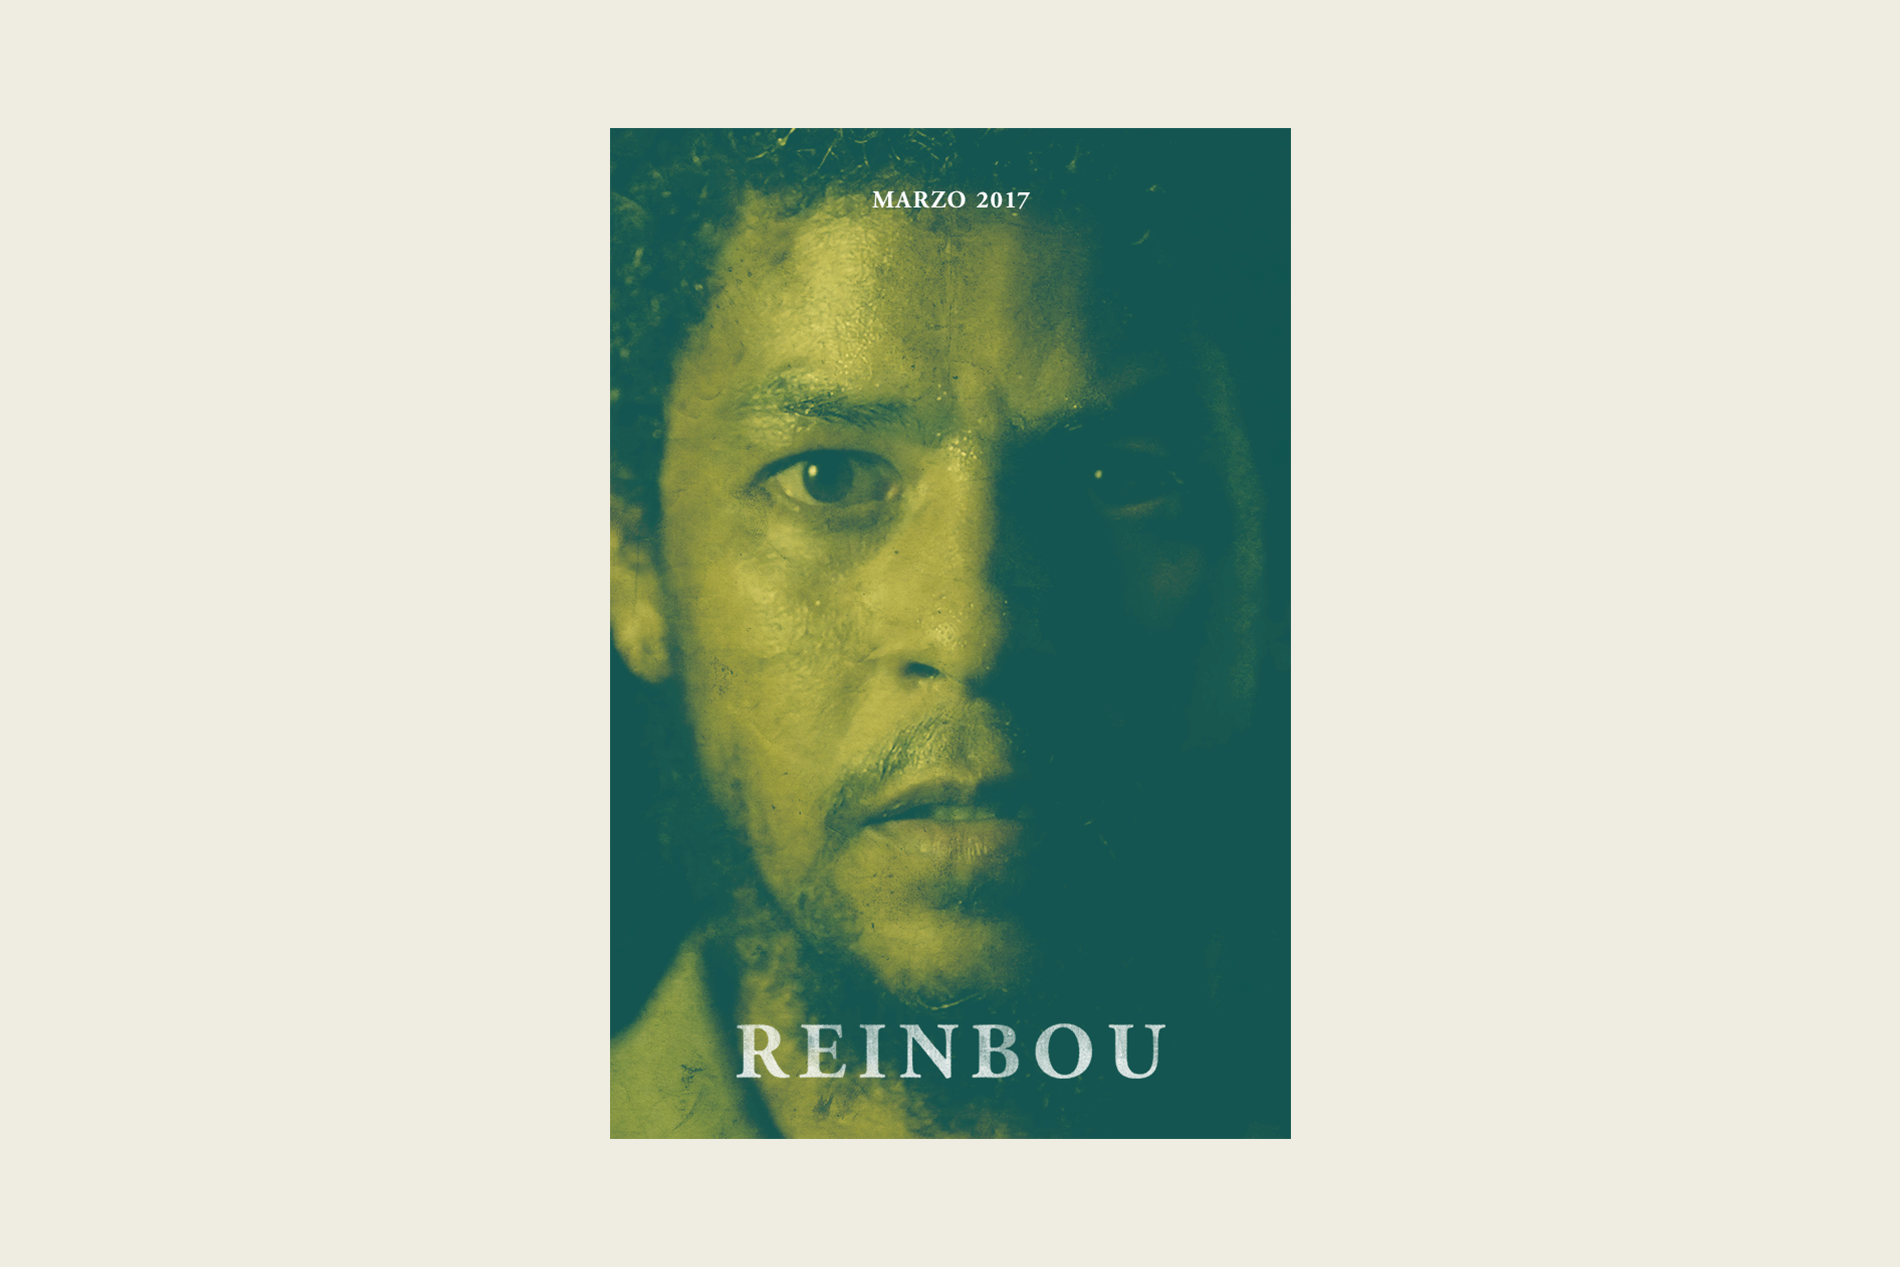 Reinbou_Project14_Reinbou-copy-2.png